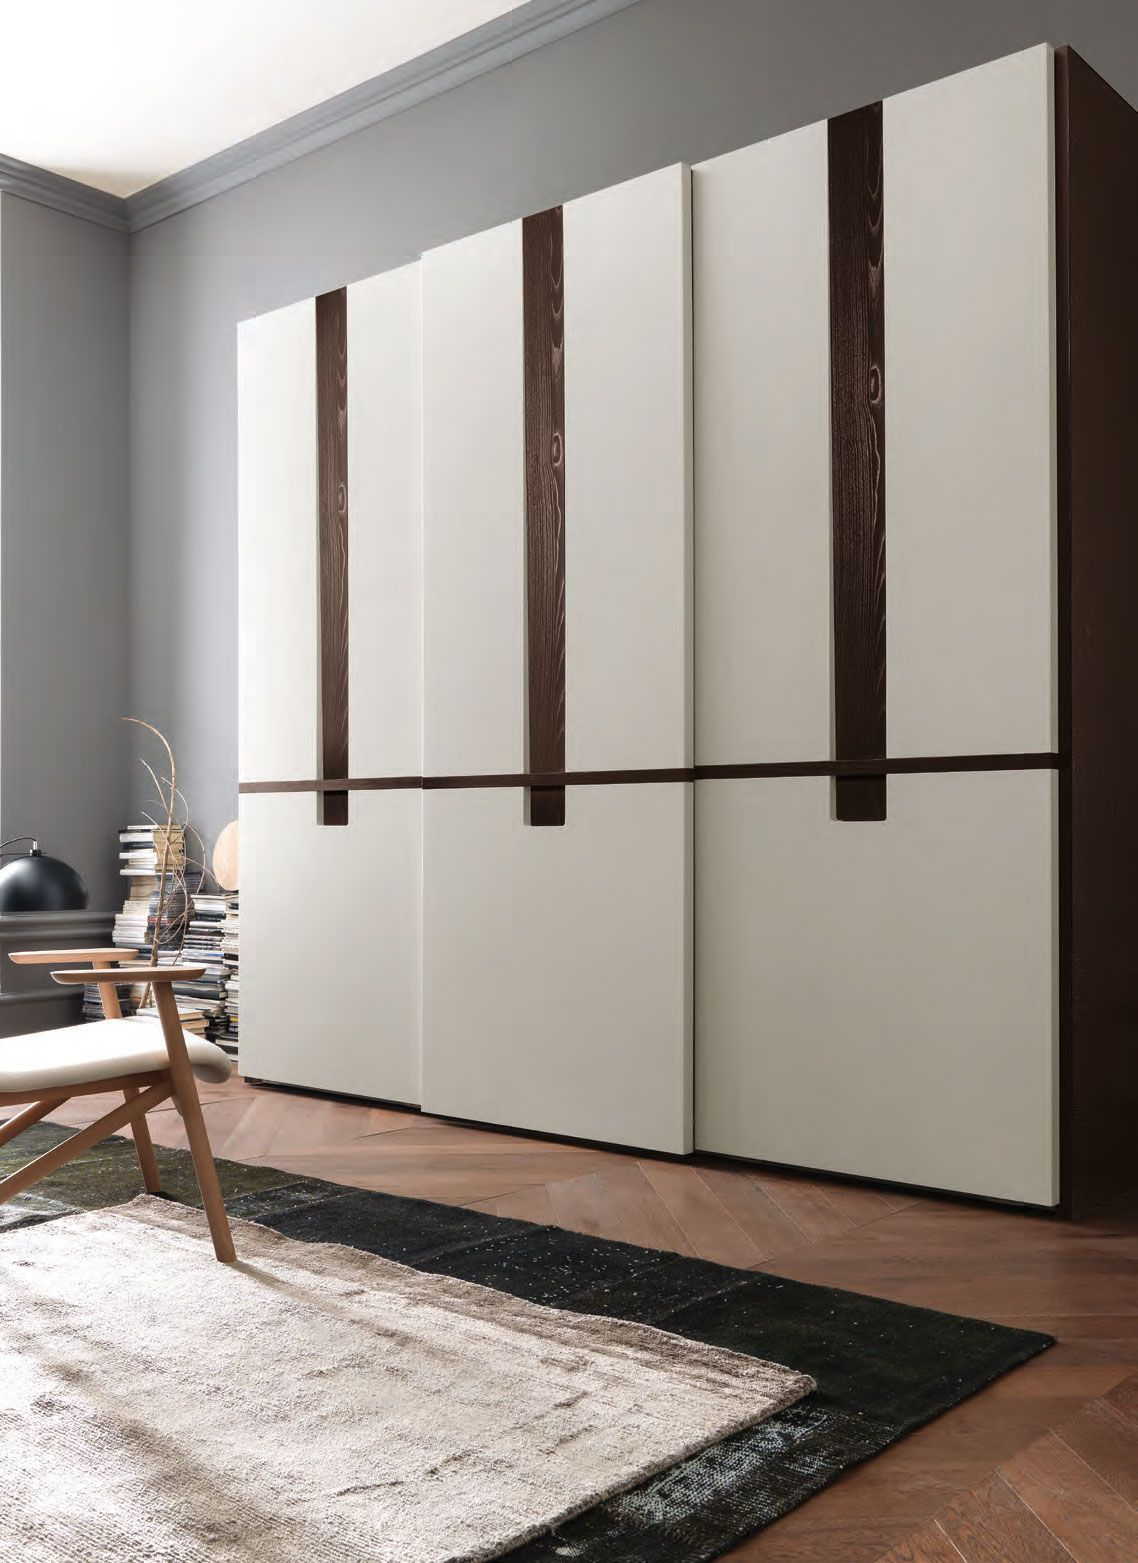 35 modern wardrobe furniture designs wardrobes wardrobe design bedroom wardrobe wardrobe - Wardrobe design ...